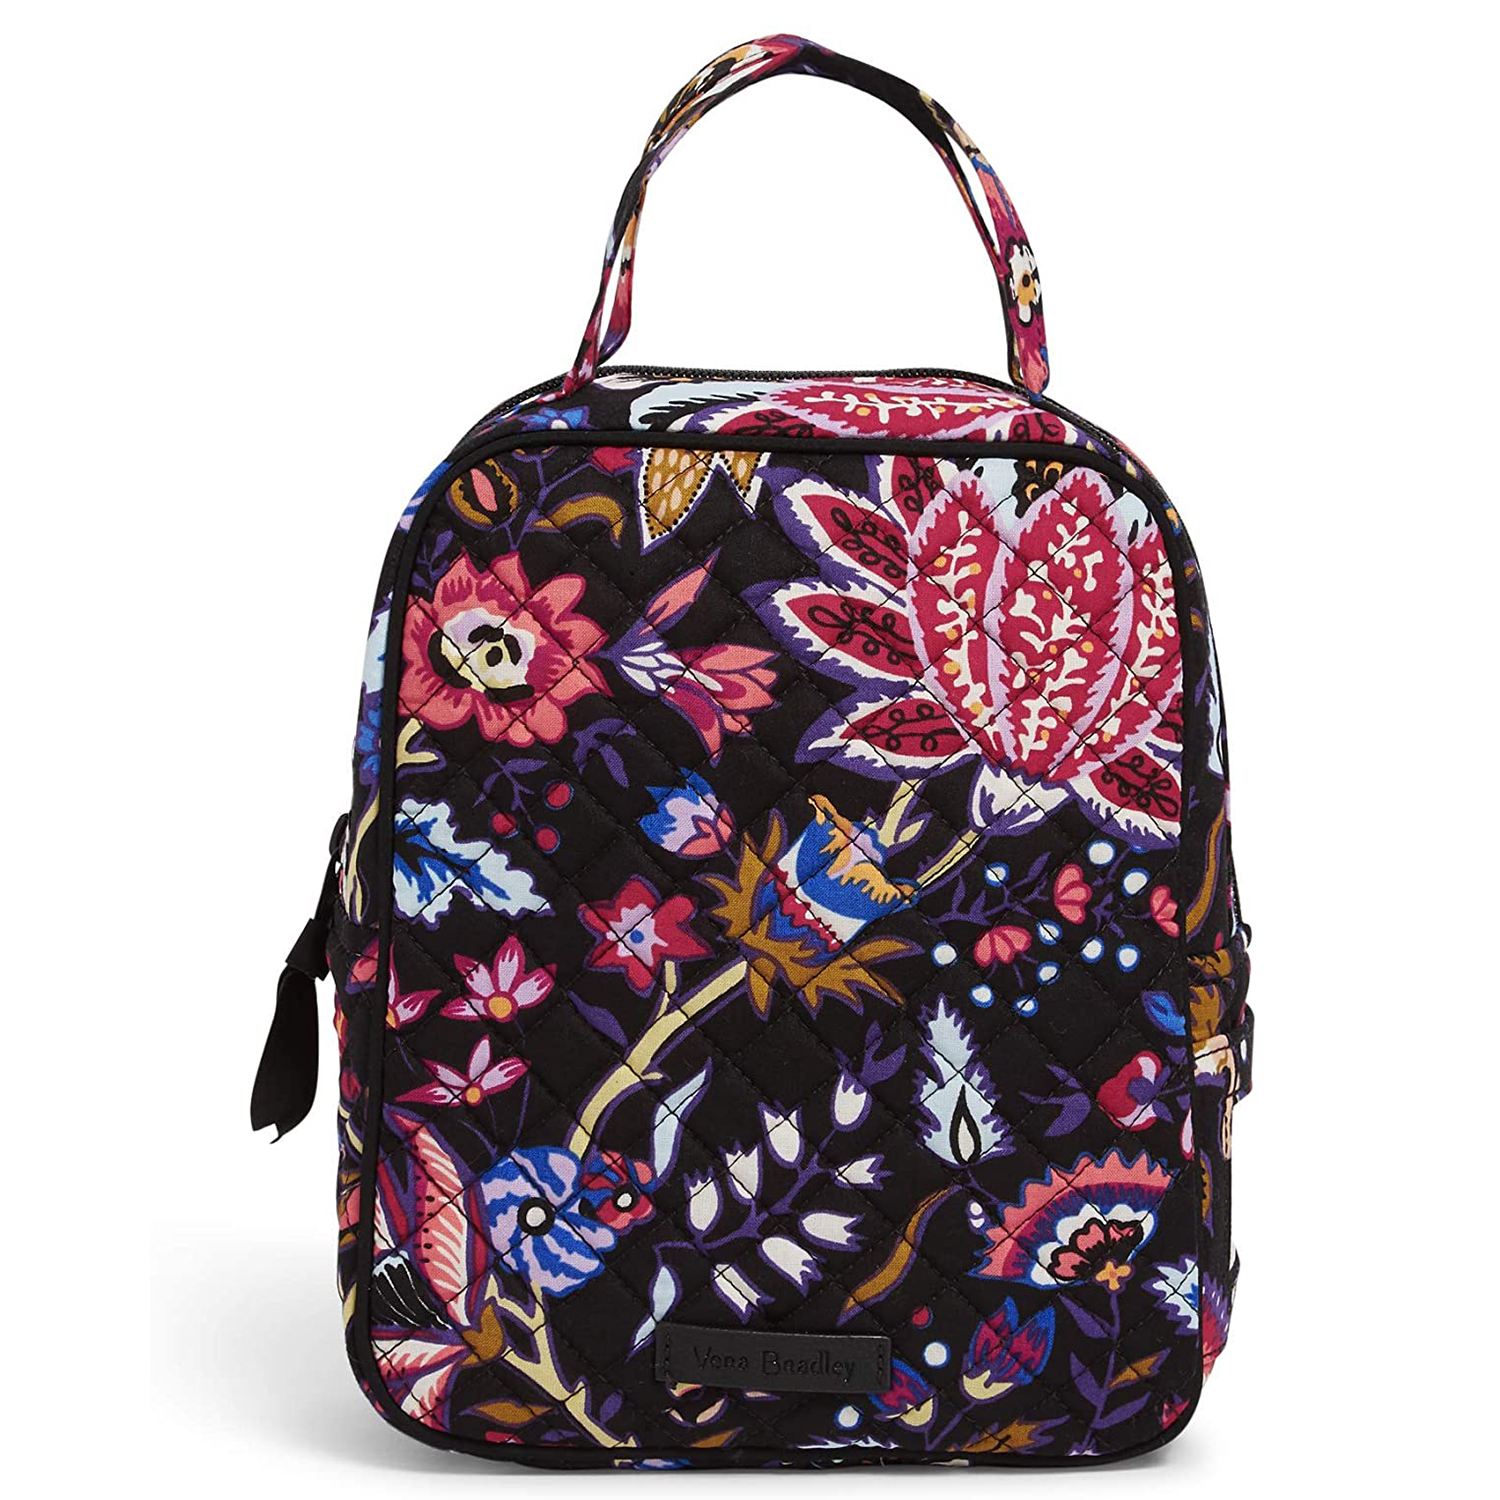 Amazon Lunch Bags for Women Insulated Fashionable